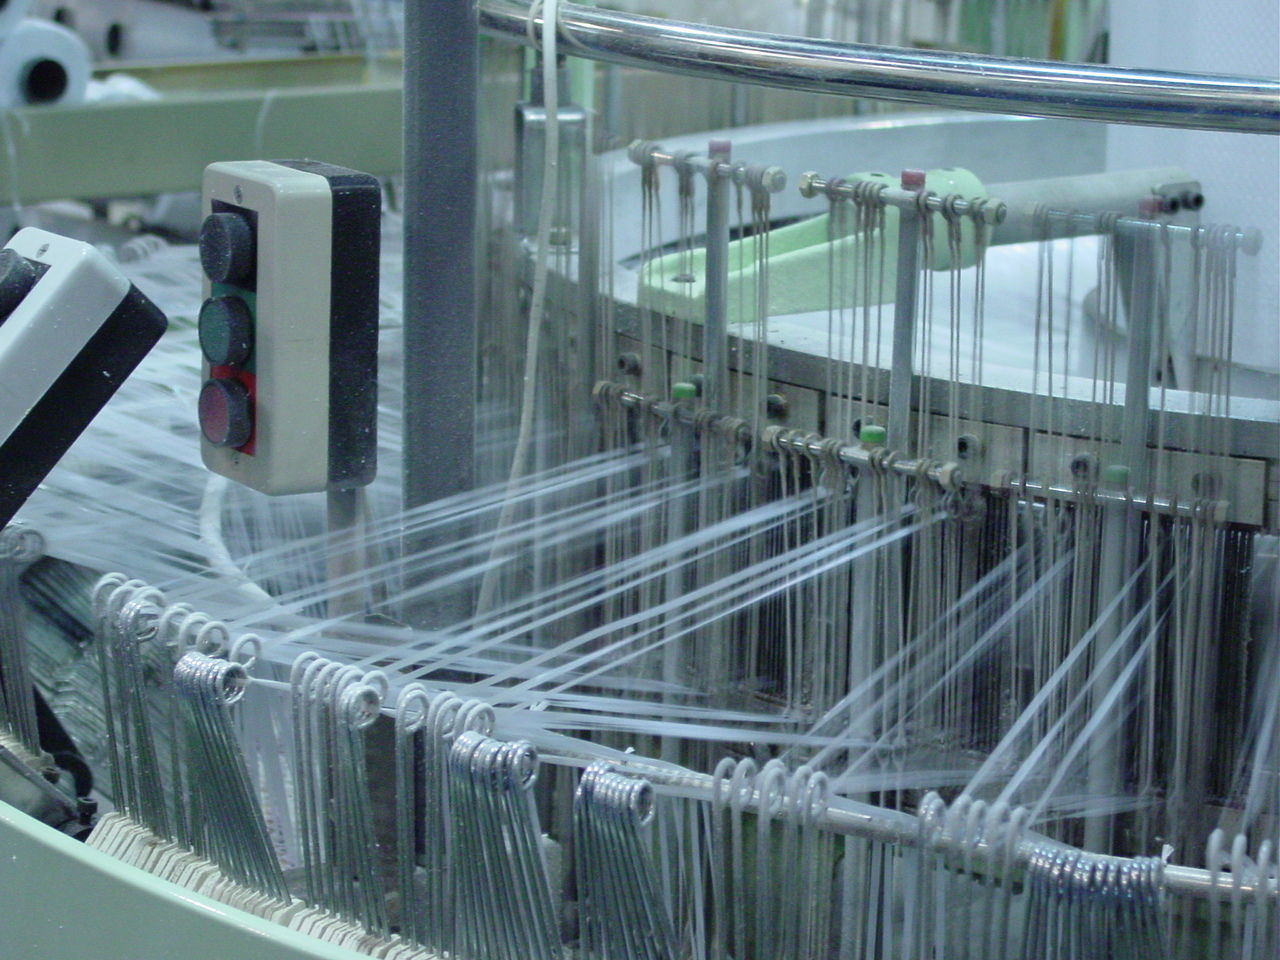 Close-up Day Factory Indoors  LatinAmerica Manufacturing Equipment No People Technology Textile